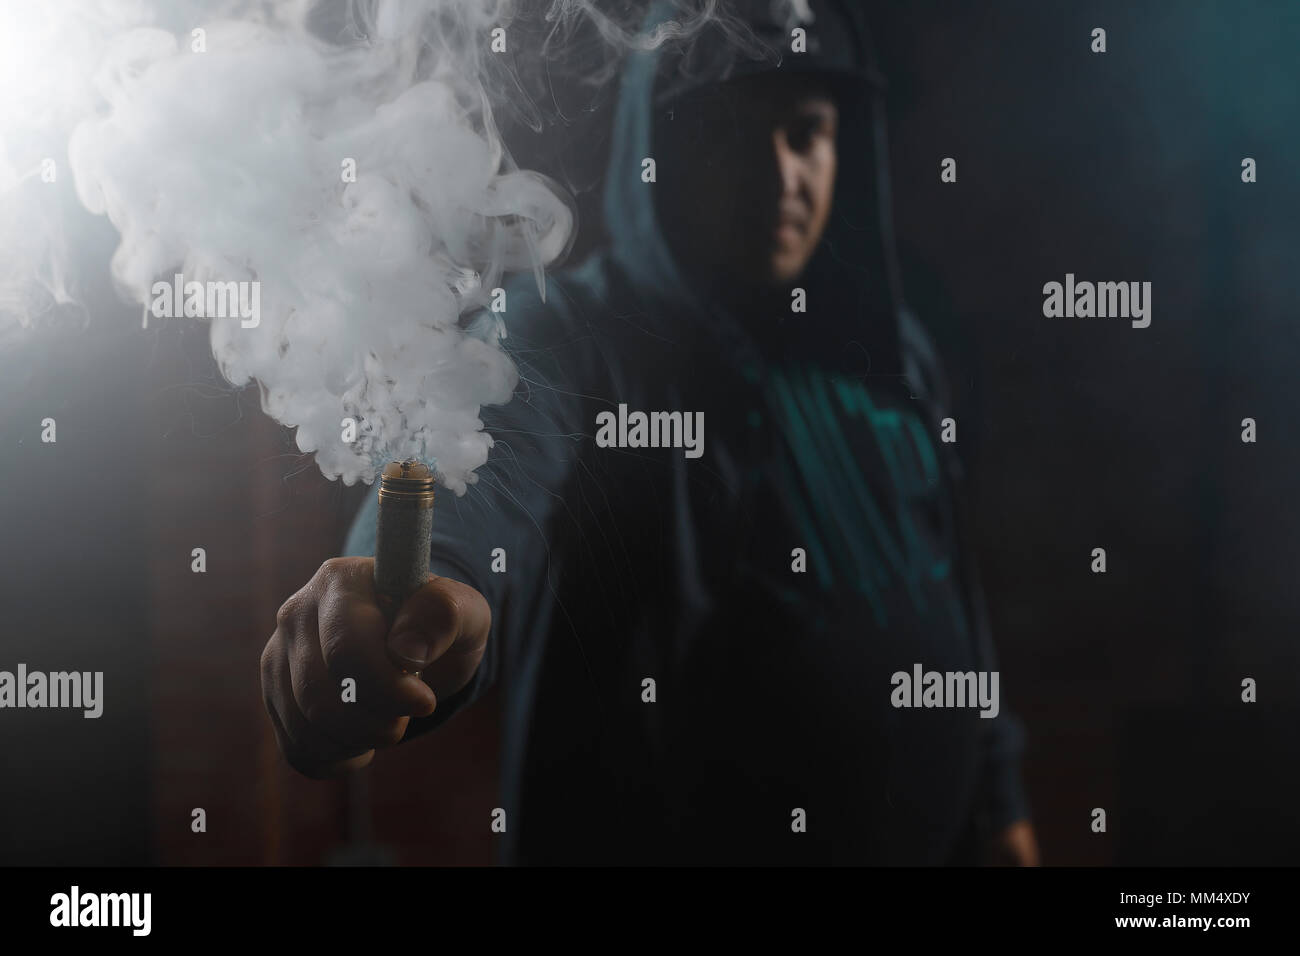 Dripper in one hand making a cloud of white, blue vapours. Friendly for vape shop posters and design. Vaping concept. - Stock Image